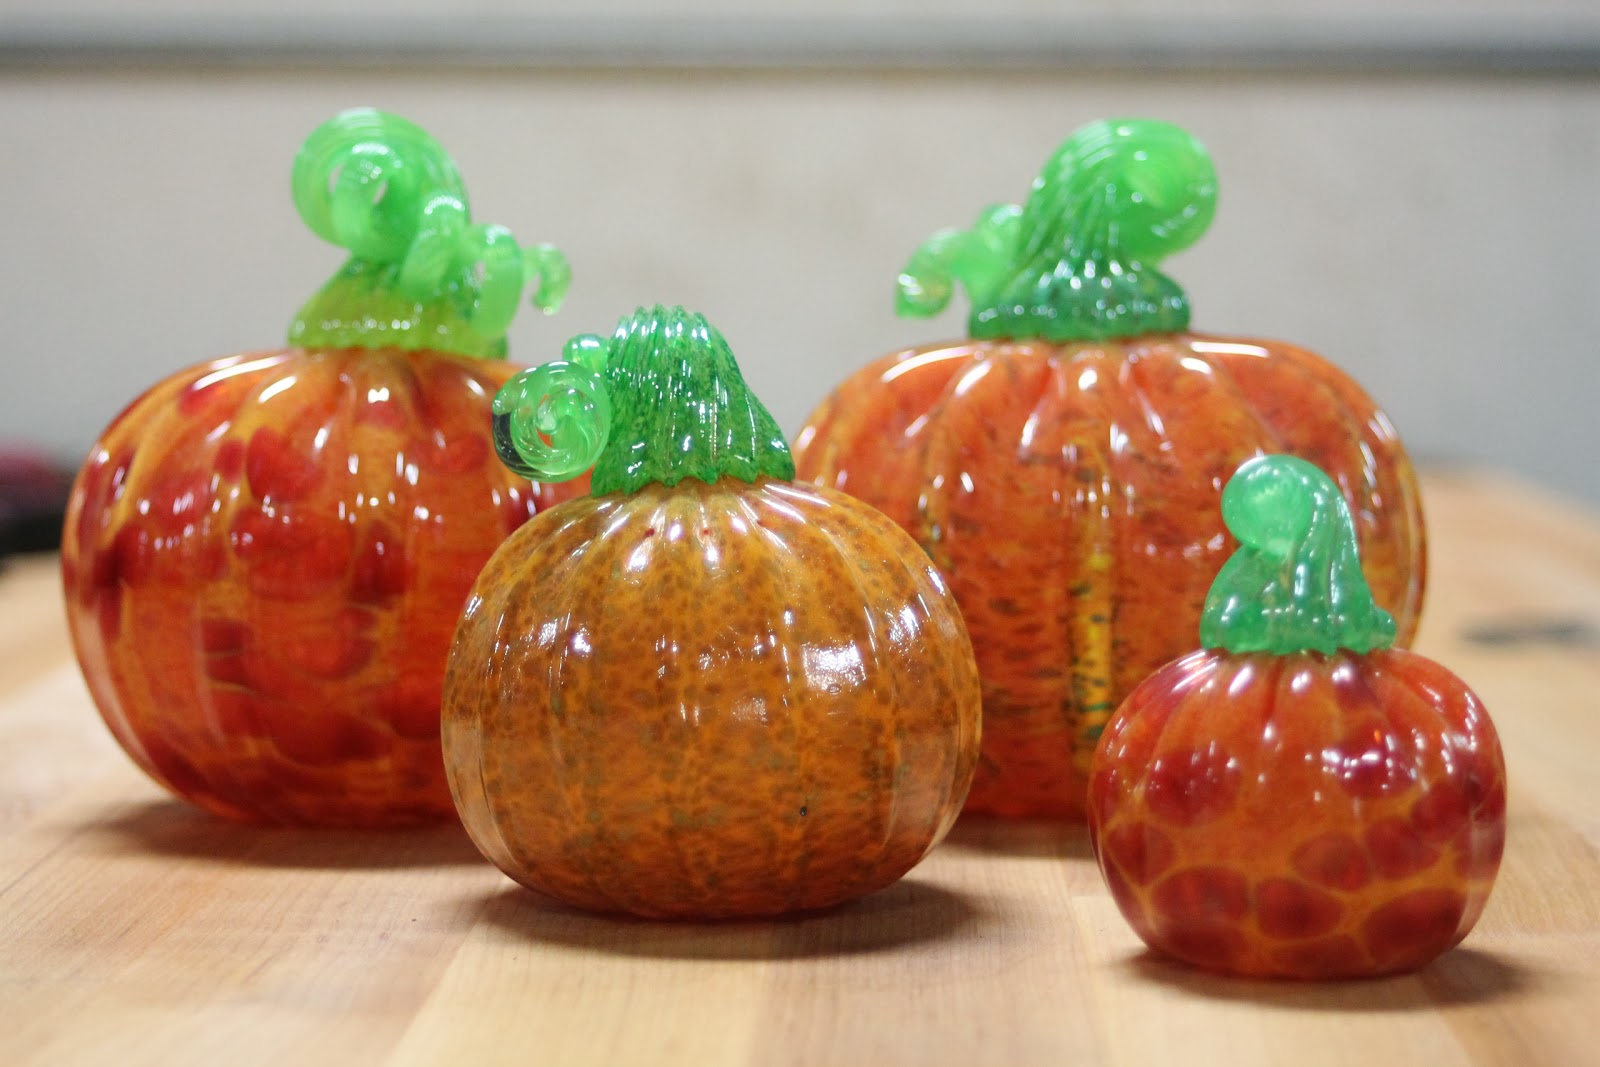 Blown Glass Pumpkins, Handmade, Artisanal Craft